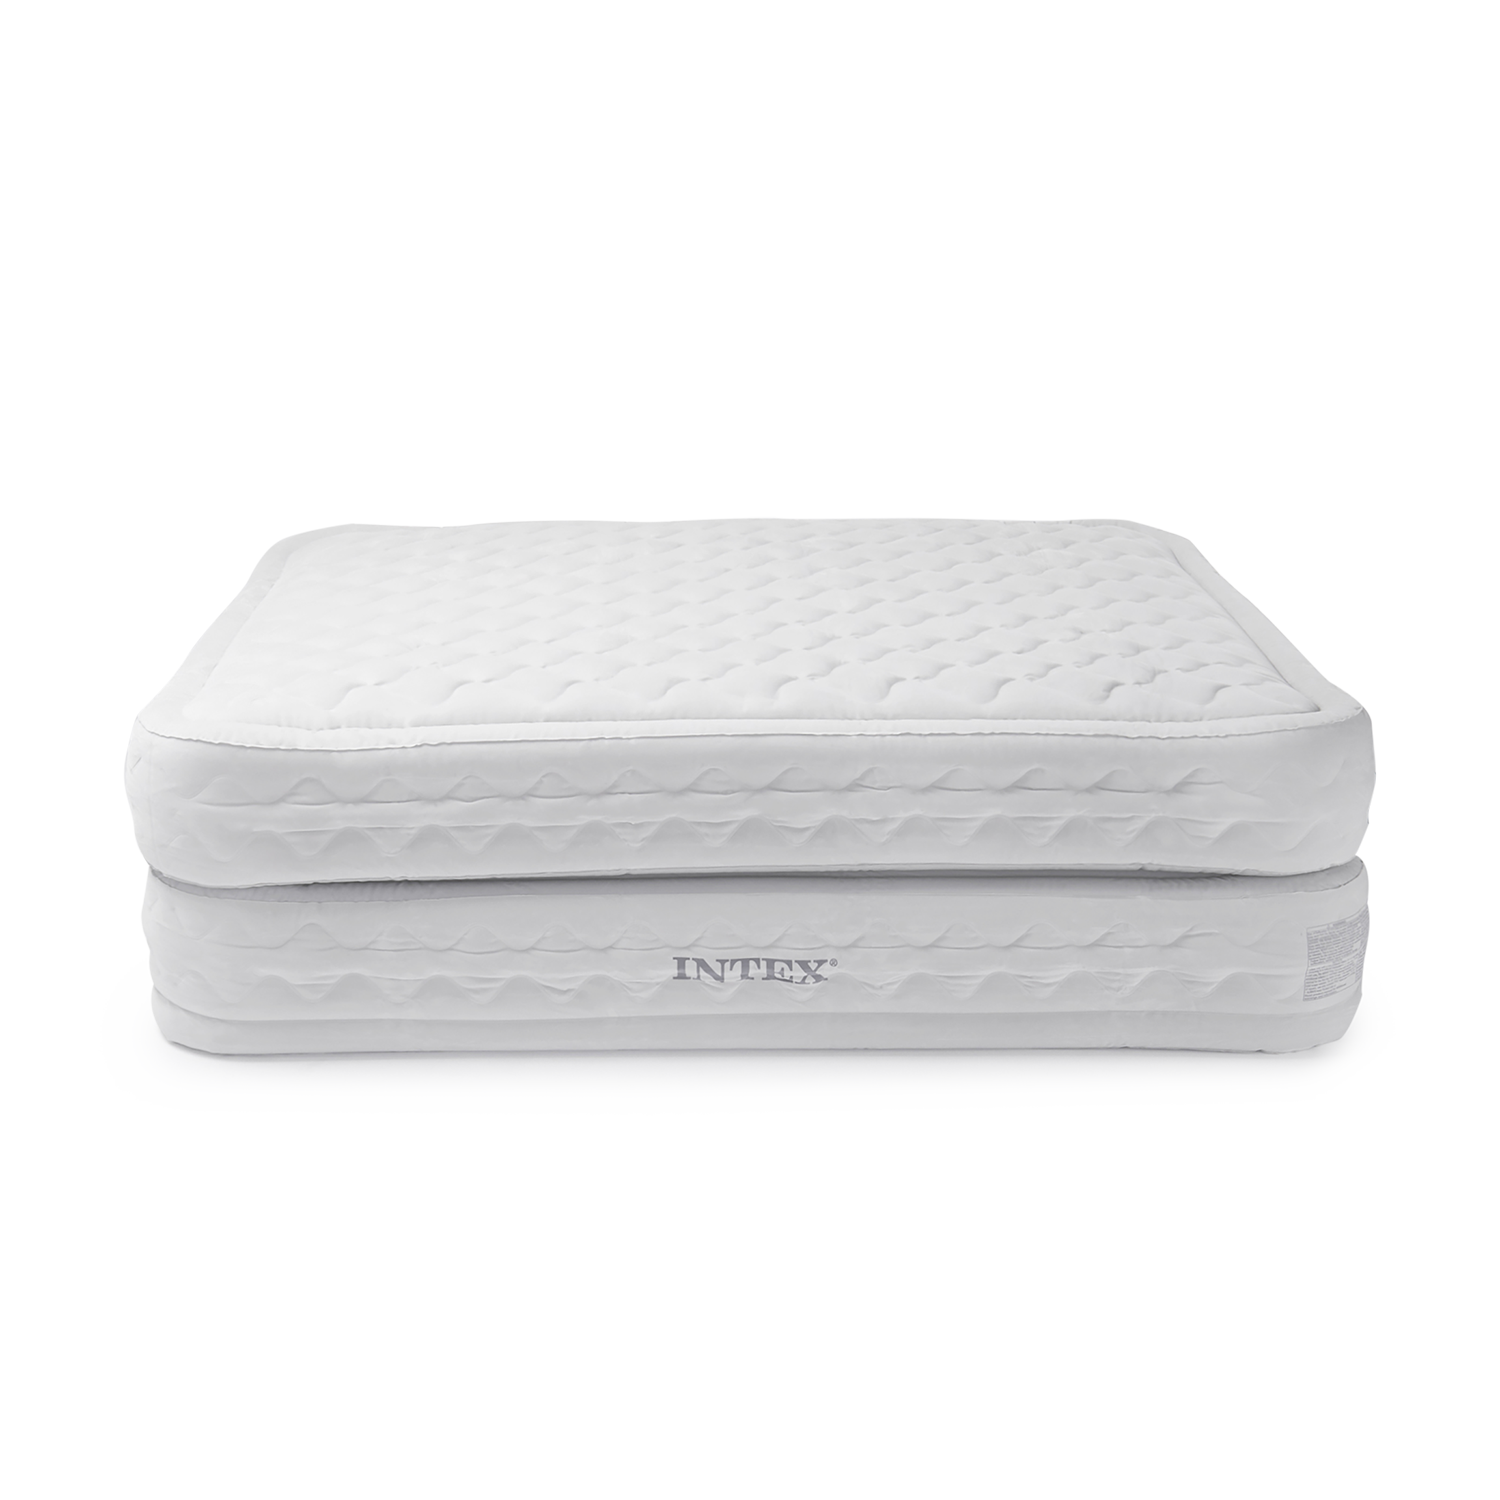 Intex 20 Queen Dura Beam Supreme Air Mattress With Built In Electric Pump Walmart Com Walmart Com